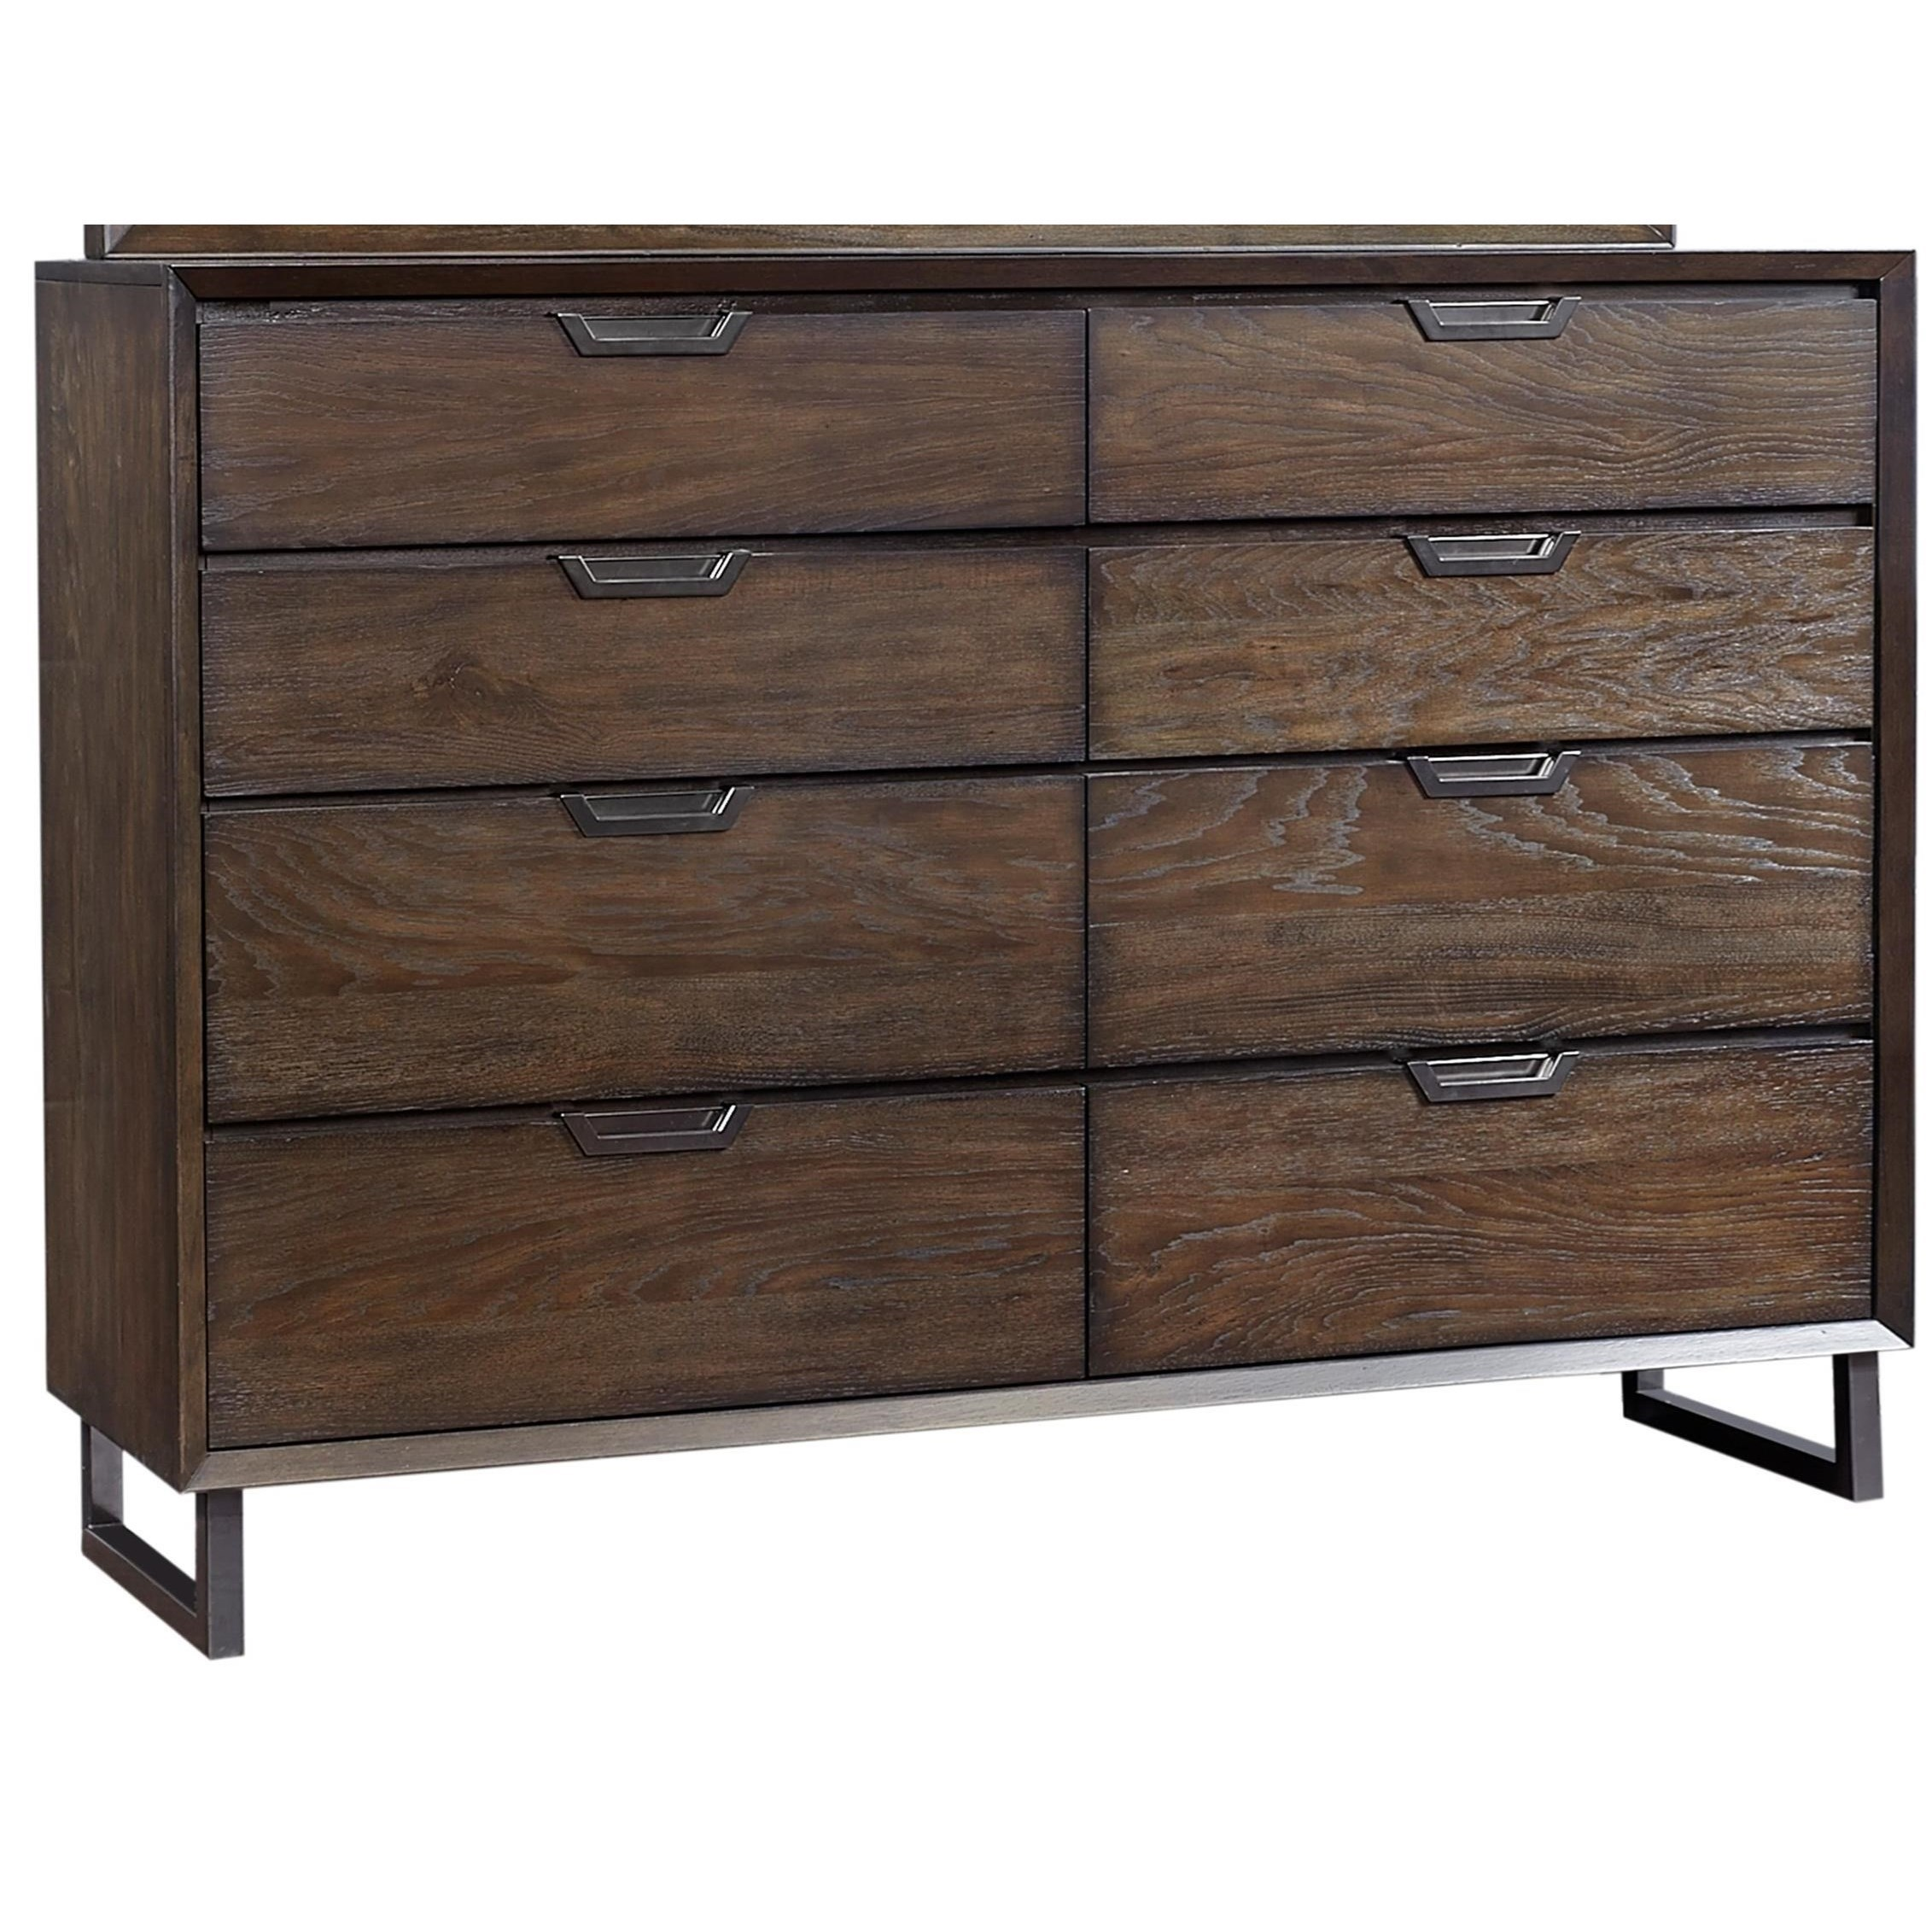 Harper Point Contemporary 8 Drawer Chesser With Felt Lined Top Drawers By Aspenhome Clackamas Store Only At Gallery Furniture